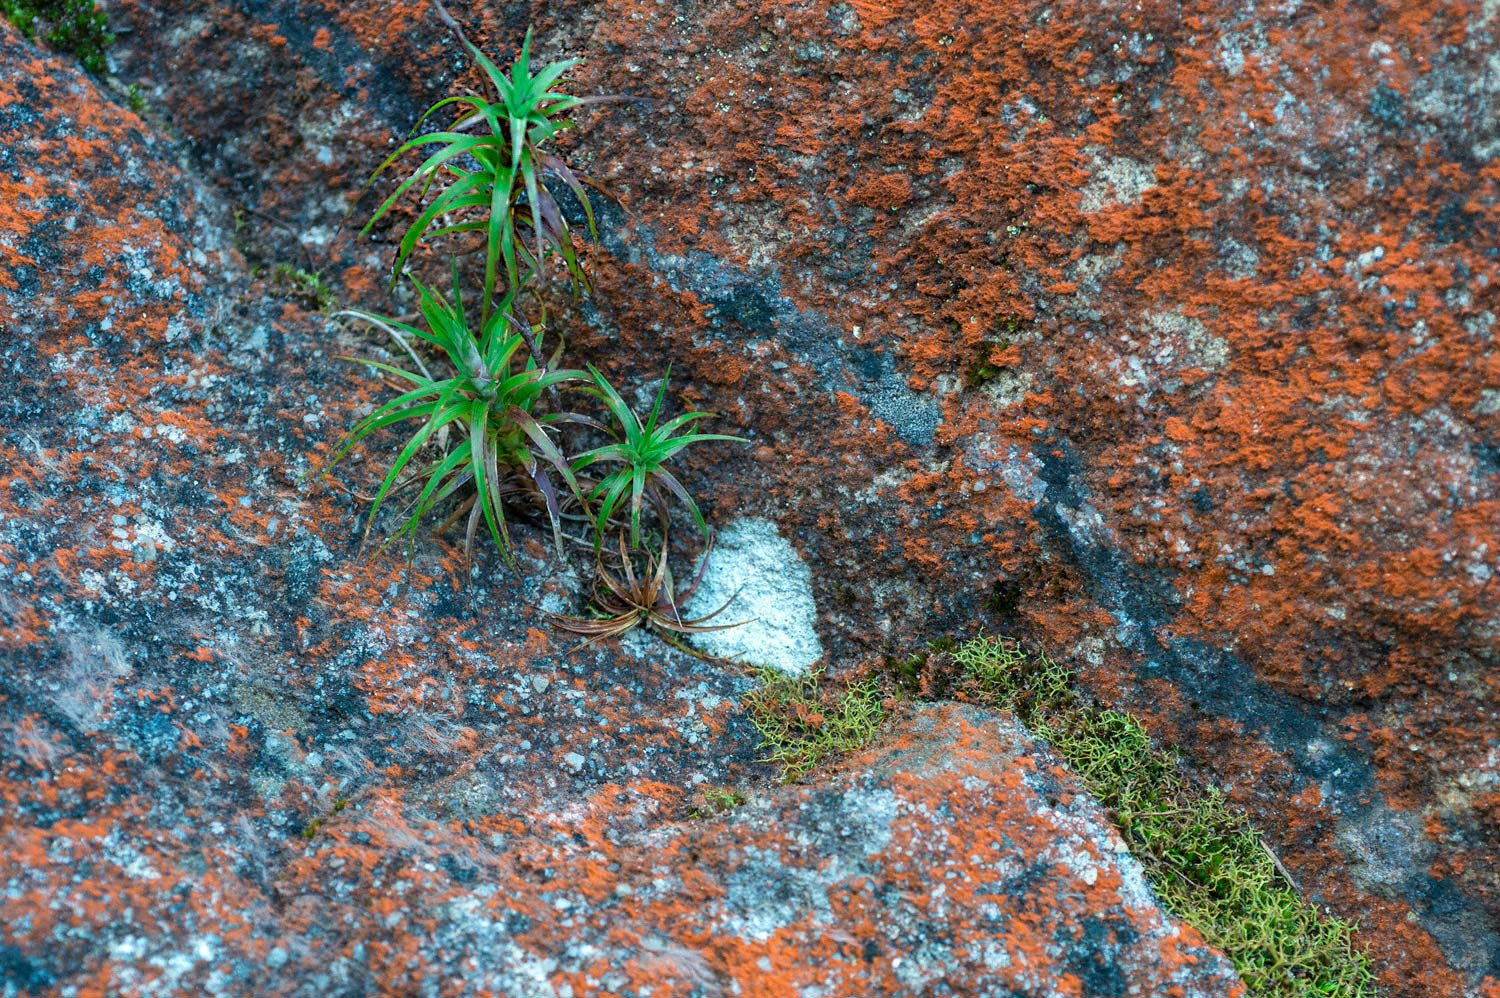 Warren-Hinder-Plant-Rock-Moss-Minni-Ha-Ha.jpg